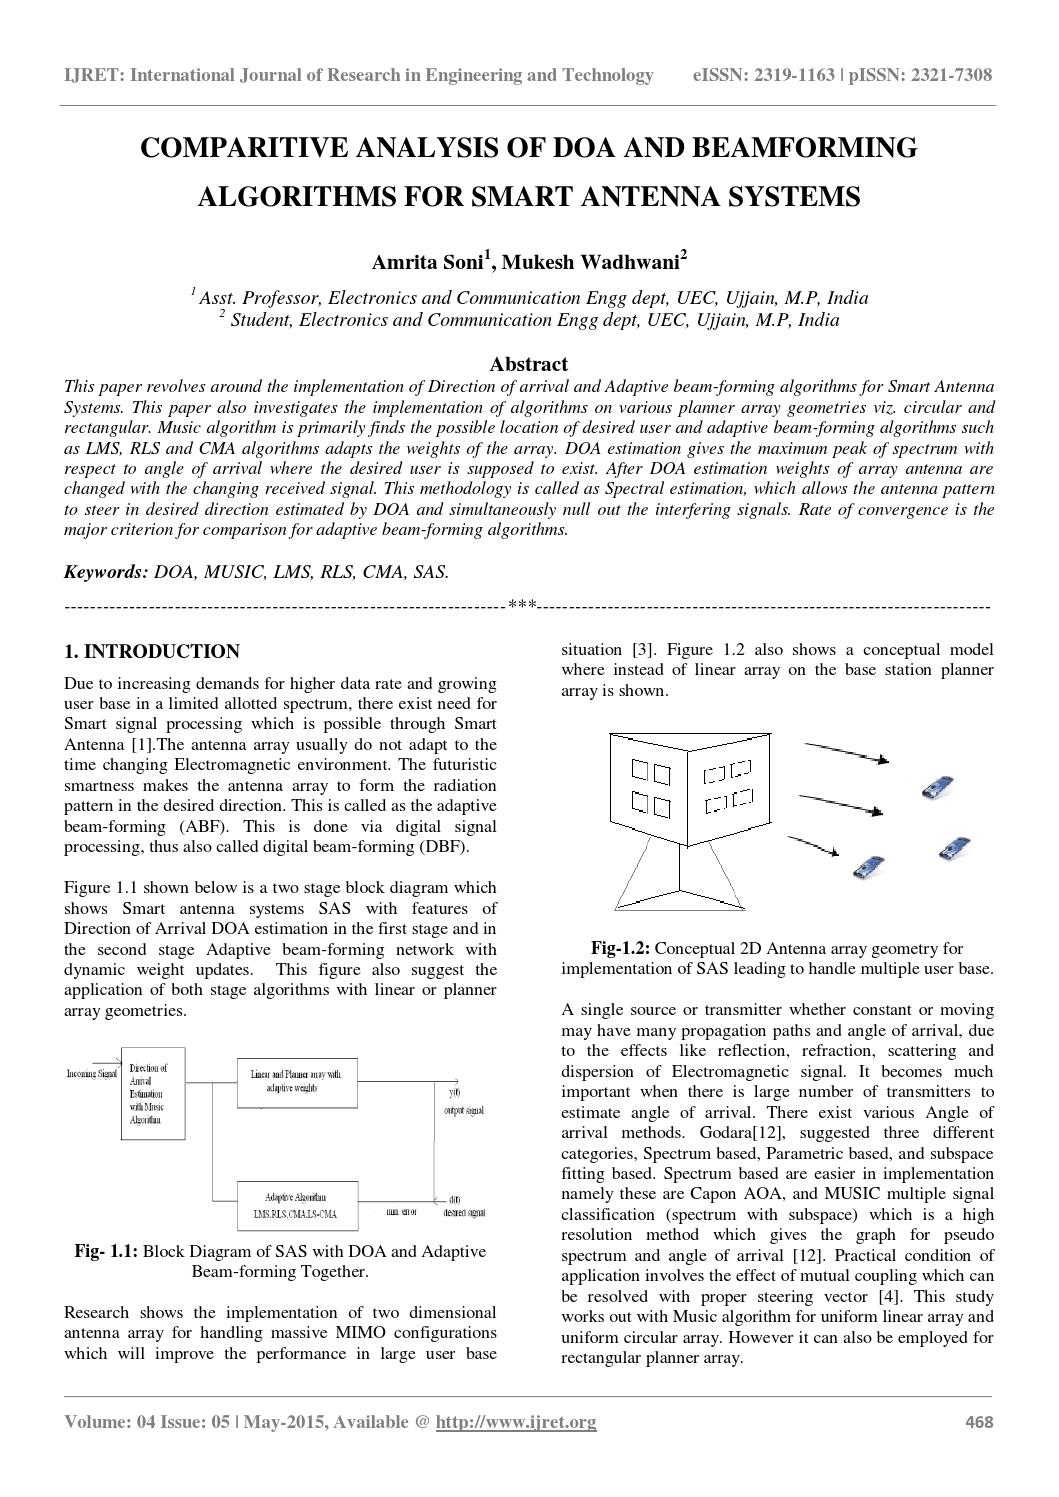 Comparitive analysis of doa and beamforming algorithms for smart